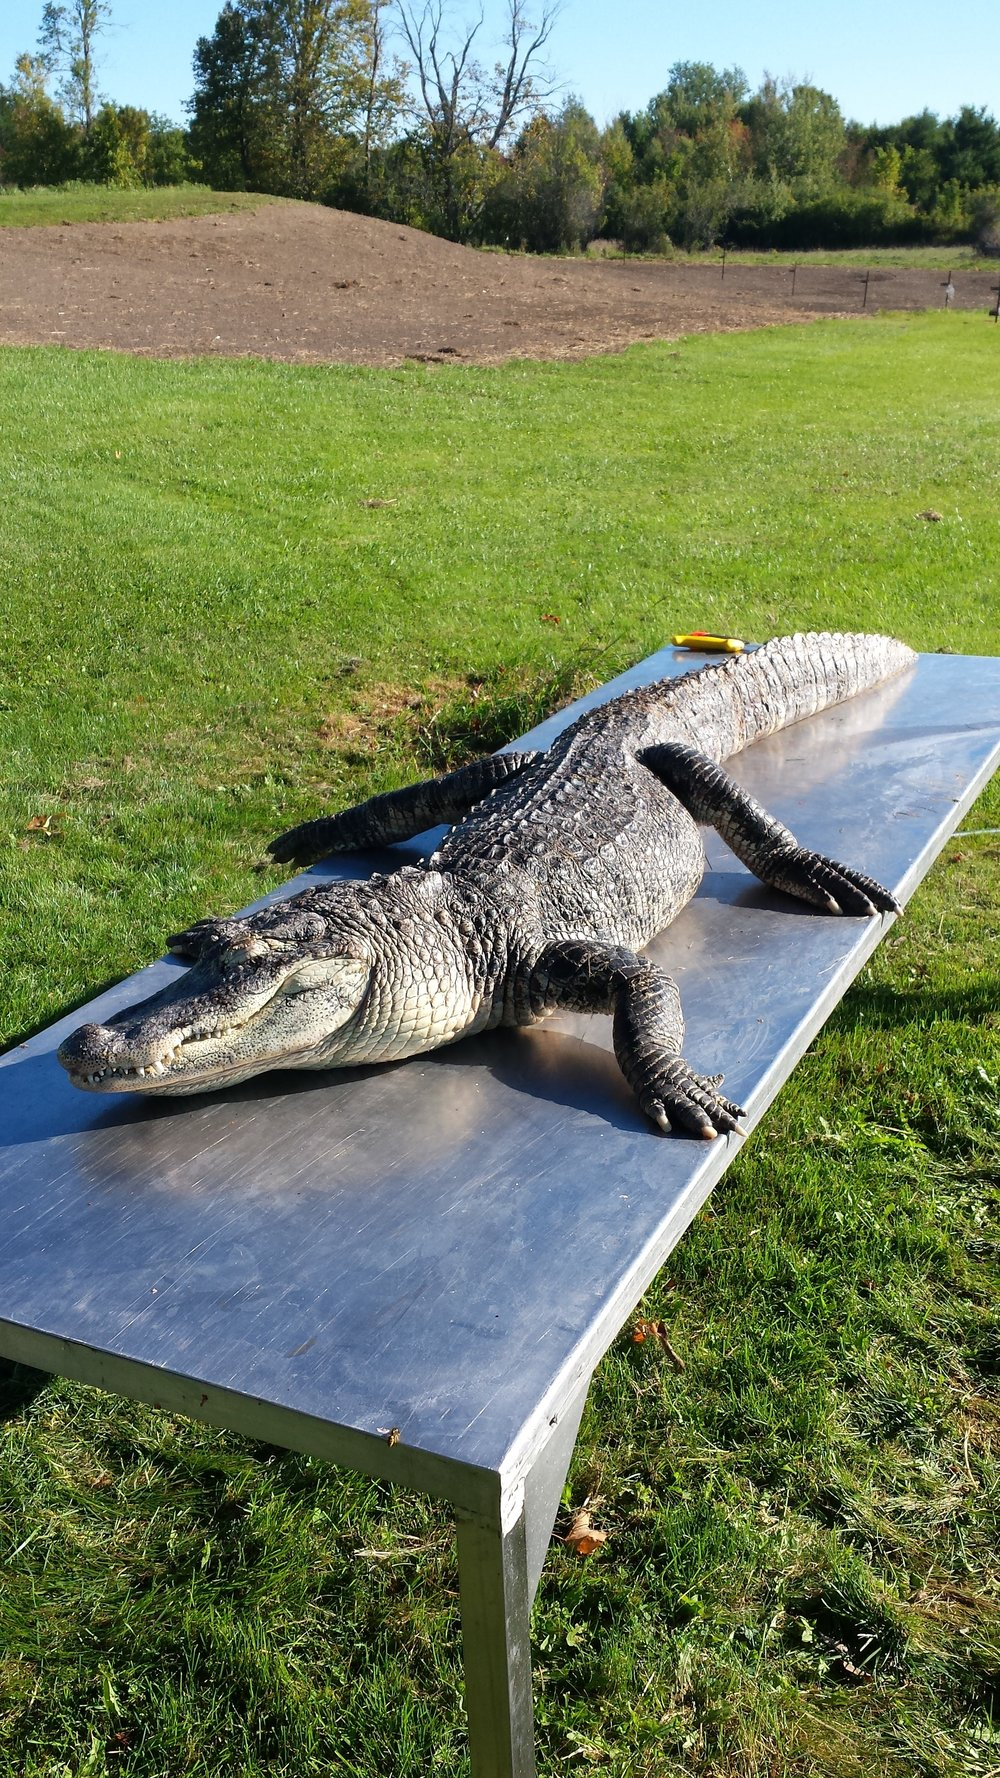 Razor the american alligator was 7 feet long and will be a great addition to my reptile examples.